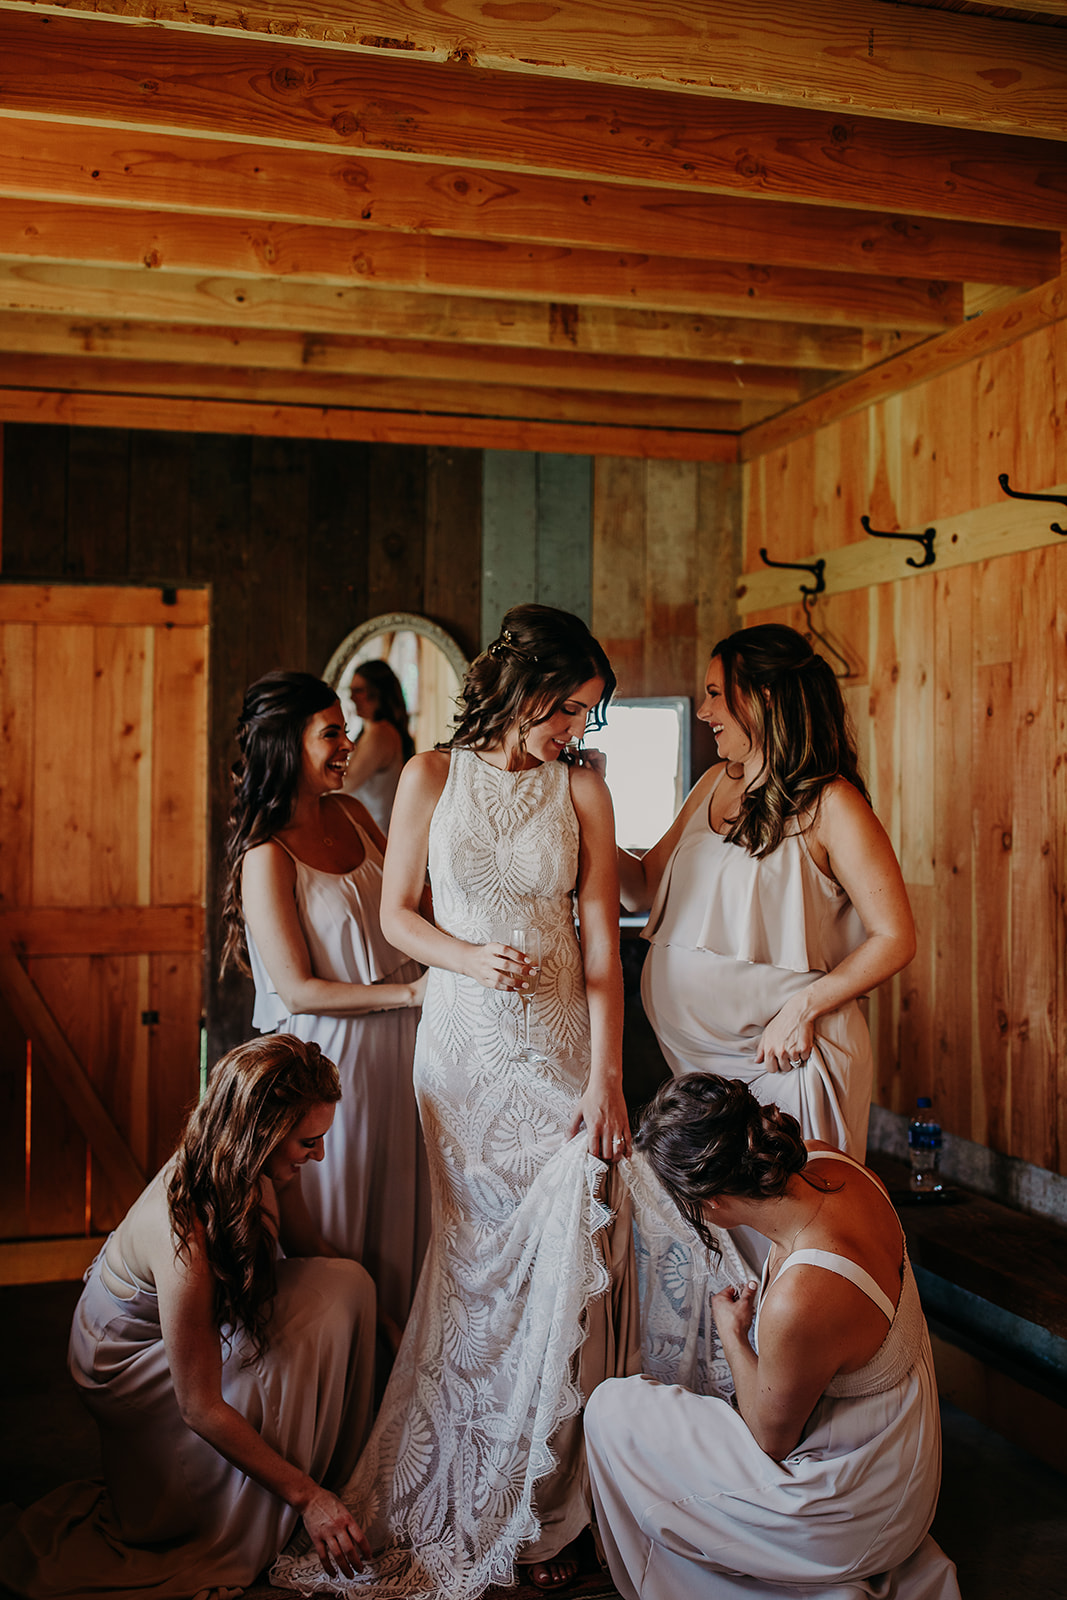 mount-vernon-wedding-salt-box-barn-amanda-riley-megan-gallagher-photography-2_(196_of_215).jpg